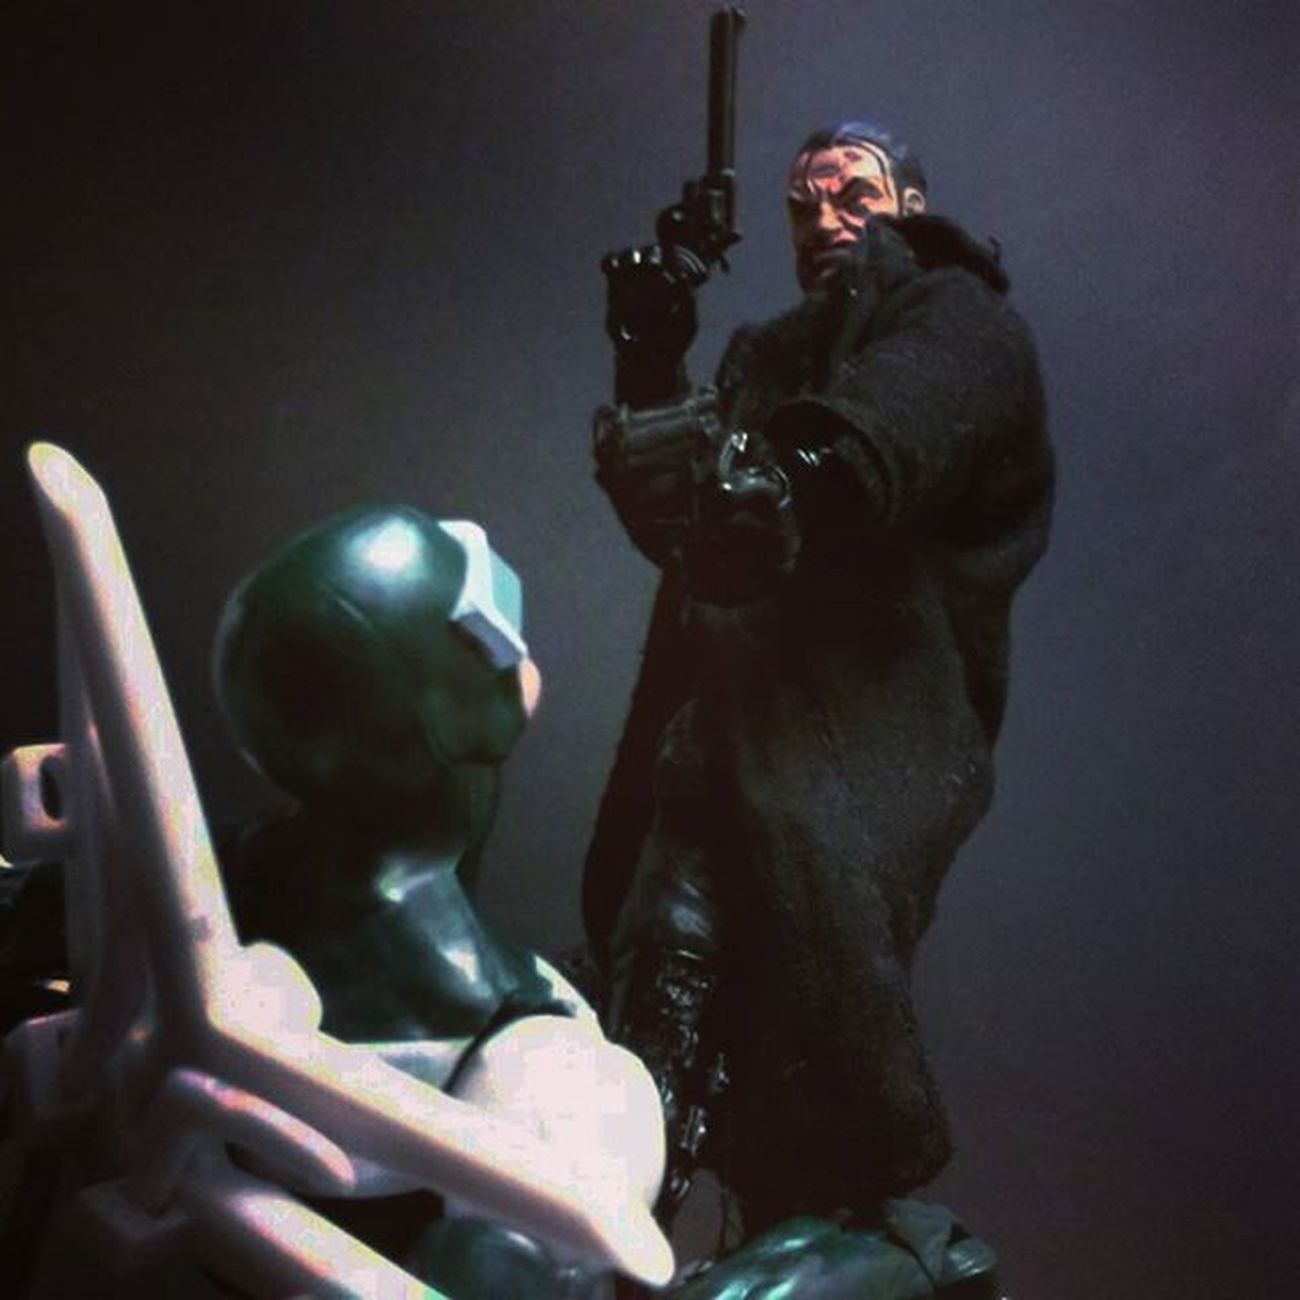 """I won't ask again..WHO IS LEADING THIS OPERATION!!"" ""Okay Okay I'll talk!!"" Marvellegends Urbanlegends Punisher ThePunisher Frankcastle Netflix Daredevil Mcu Amazingspiderman Boomerang  Manchild Toyslagram Toysrmydrug Toystagram Actiontoyart Actionfigurephotography Articulatedcomicbook ACBA Figurecollection Figures Collection Collector Tcb_peekaboo Tcb_devilwithin Tcb_flyupandaway tcb_fb toybiz toycommunity"